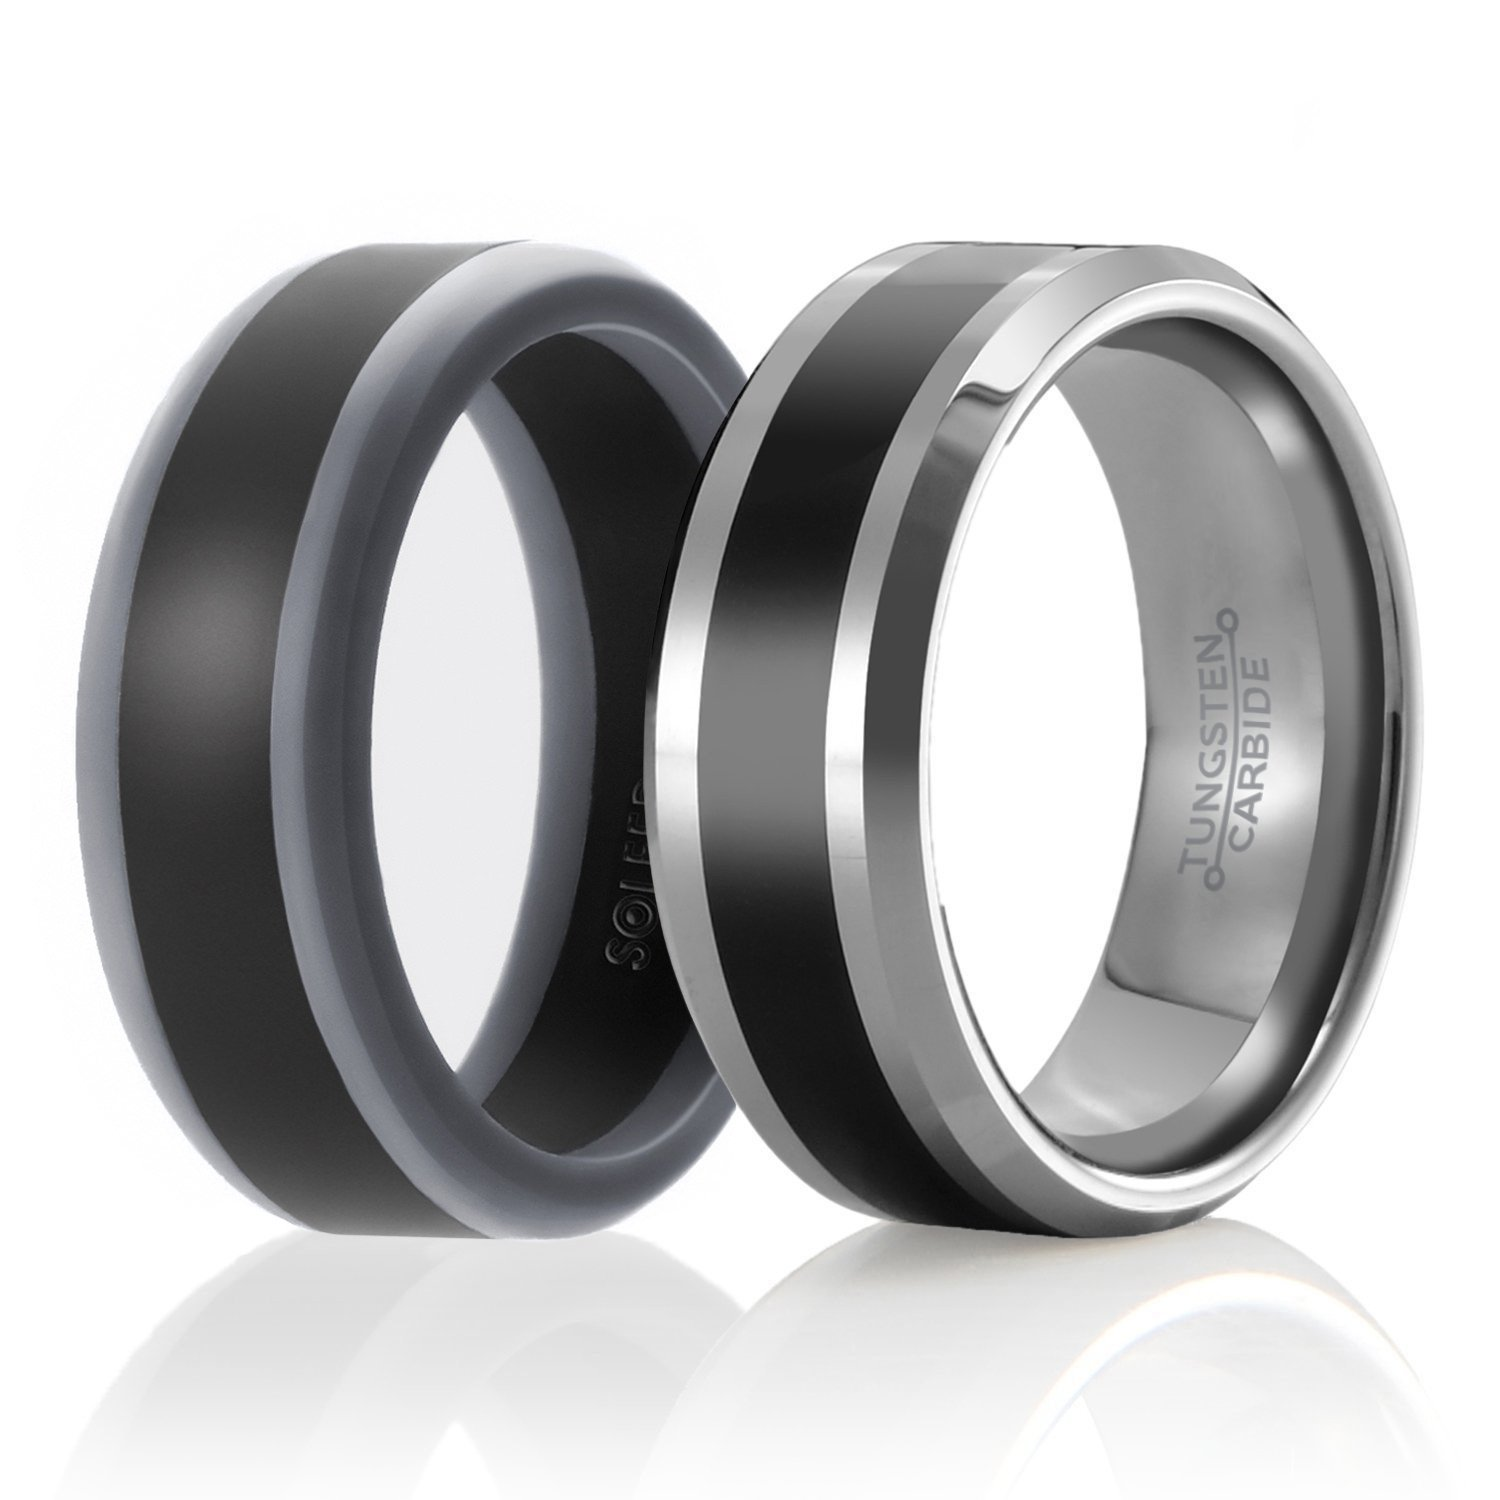 SOLEED Twins - Set of 2-1 Tungsten Wedding Band and 1 Silicone Rubber Wedding Ring for Men, Size 15